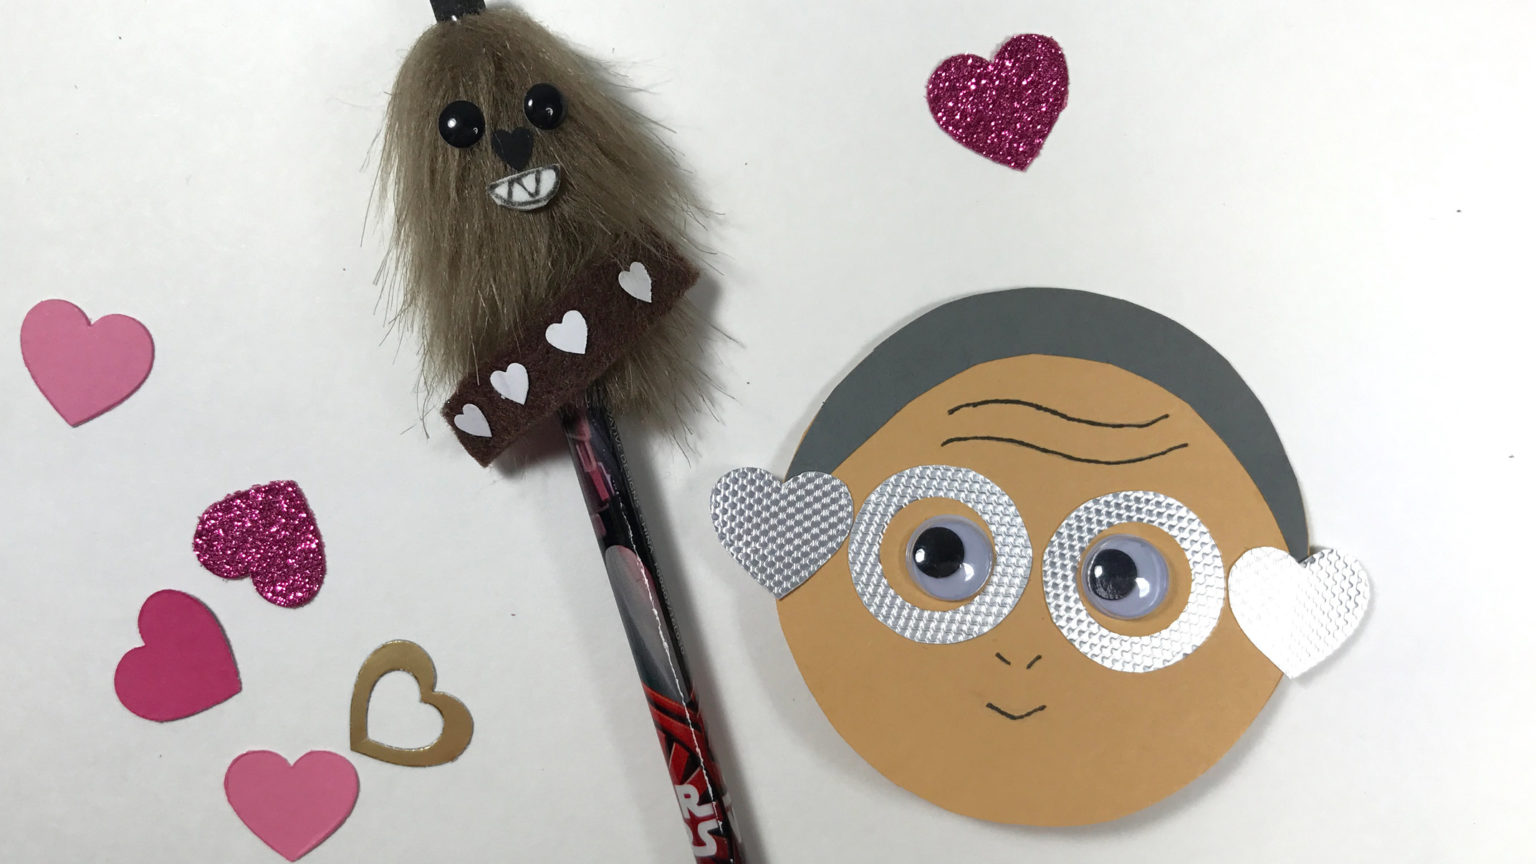 Maz Kanata Finds Her Boyfriend Chewbacca With These DIY Valentines |  StarWars.com